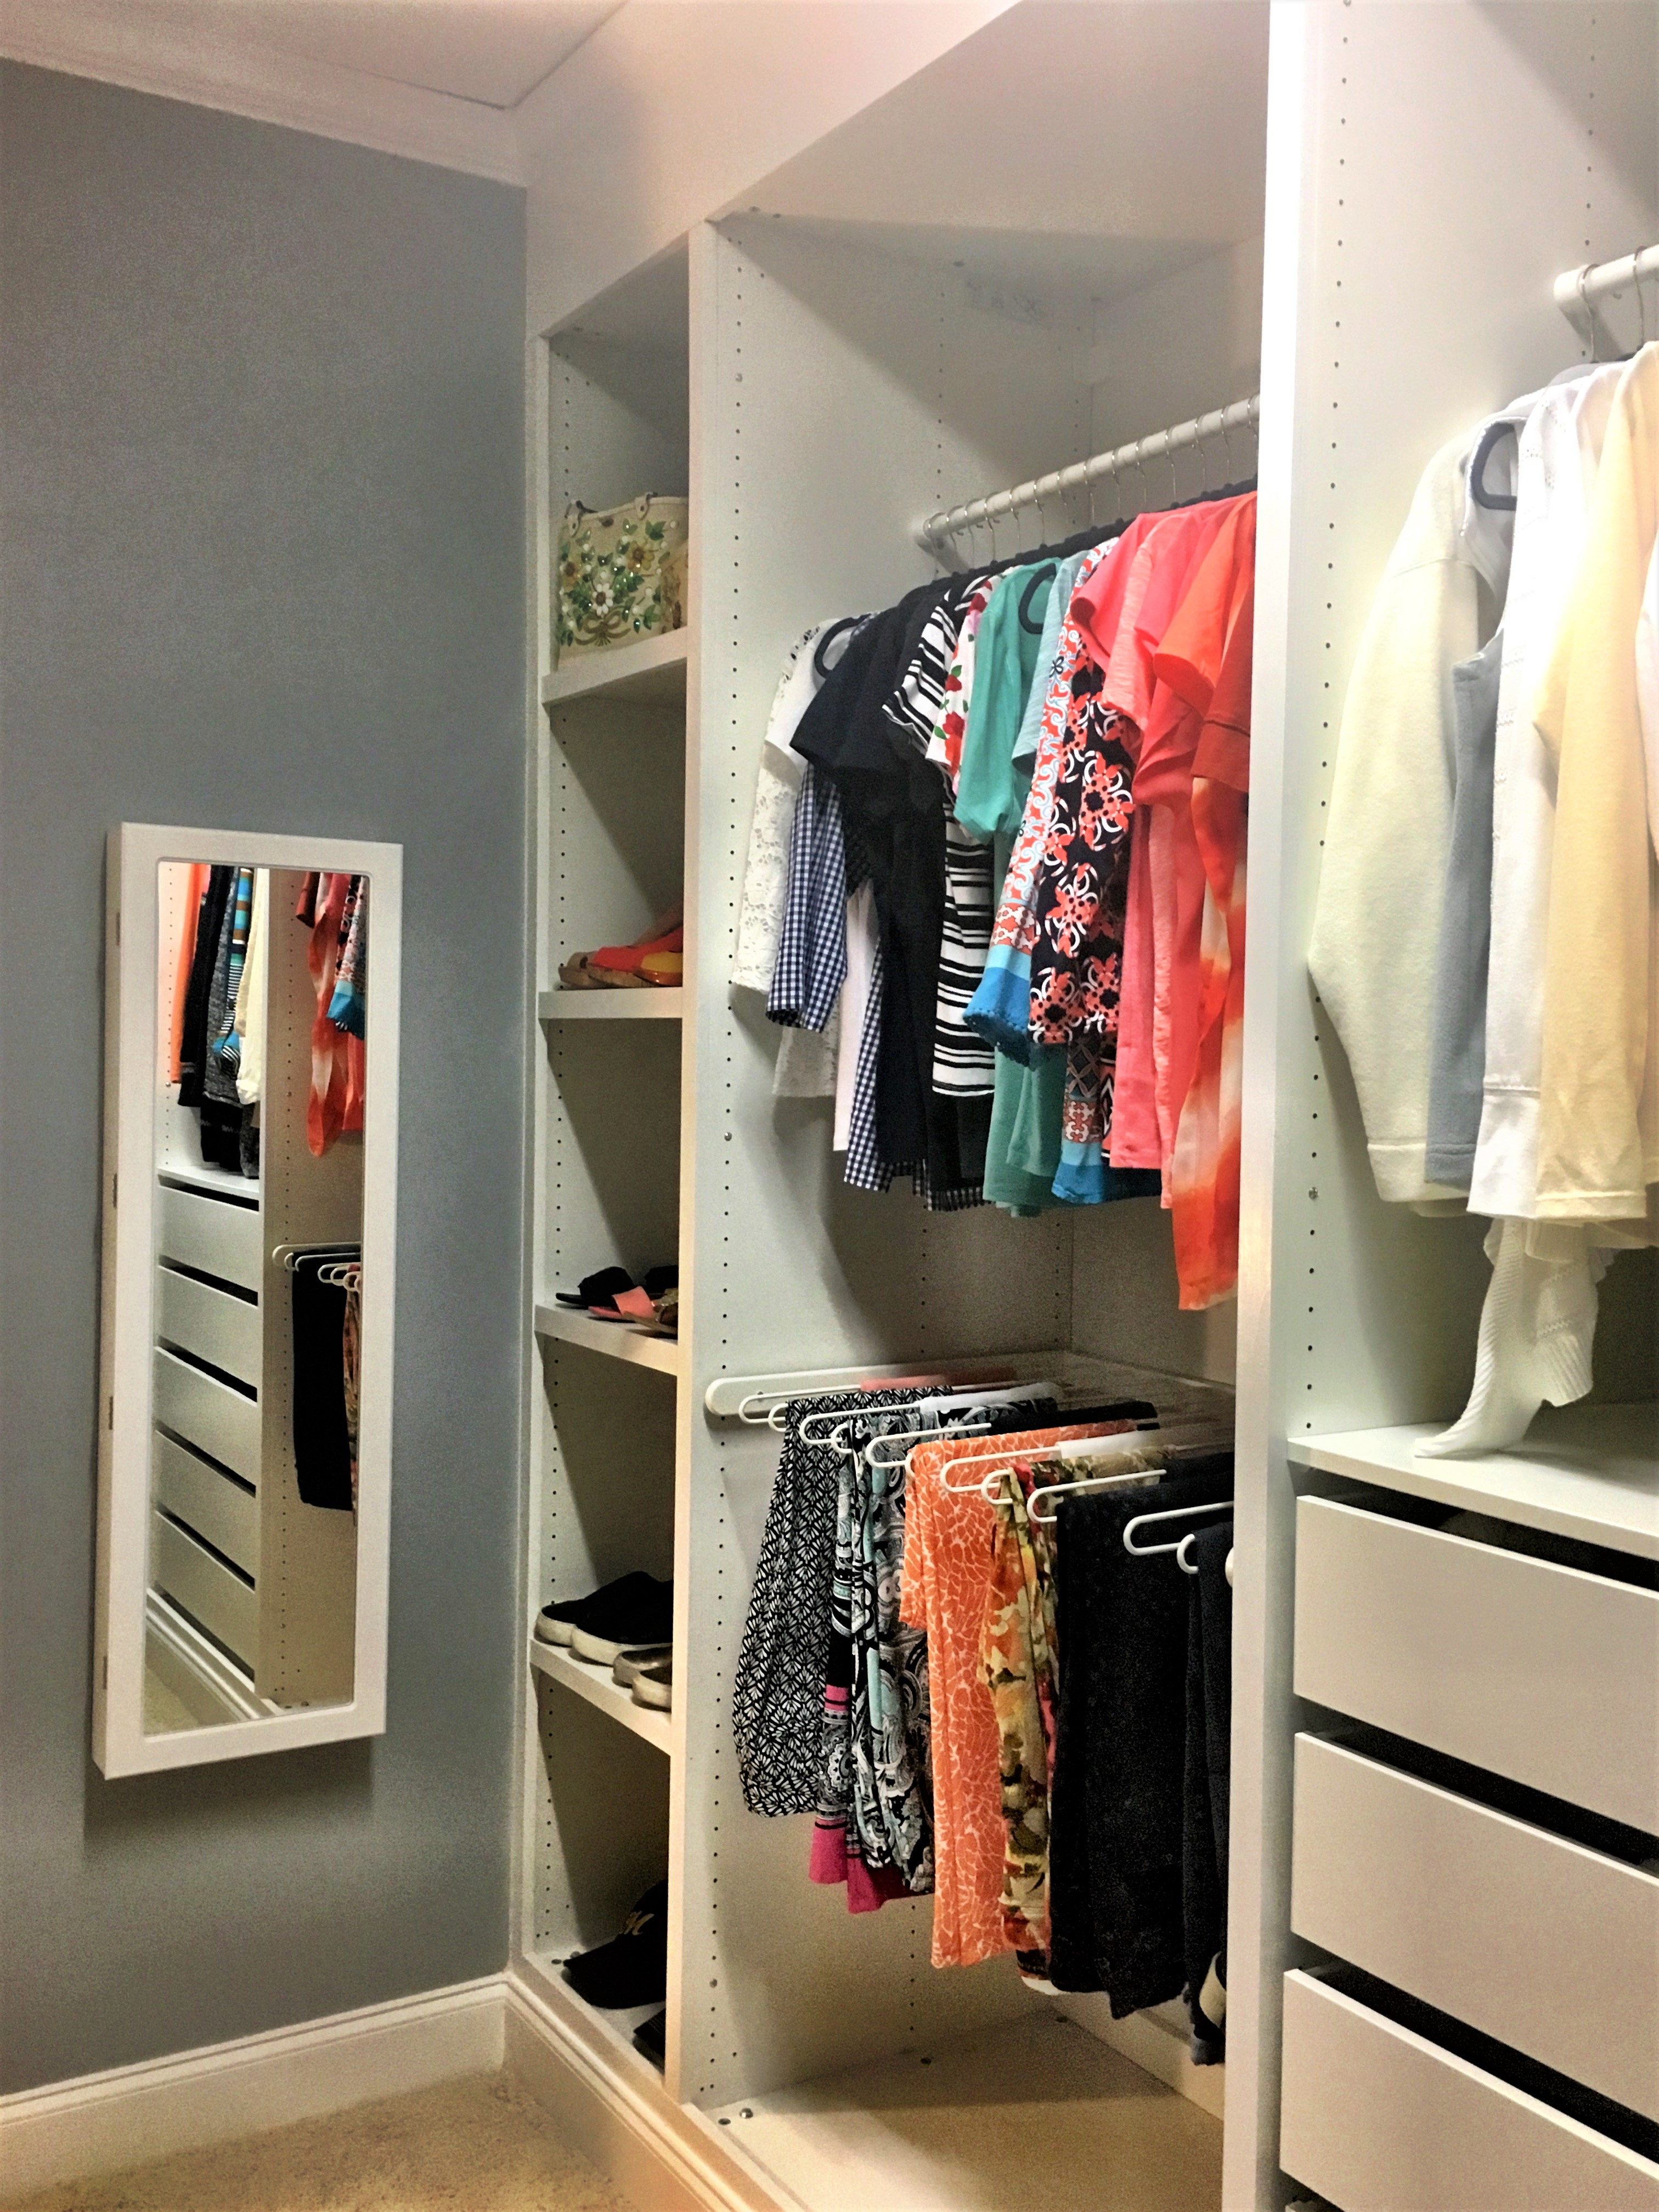 Box Room Wardrobe Ultimate Ikea Pax Hack The Big Reveal Good Life Wife